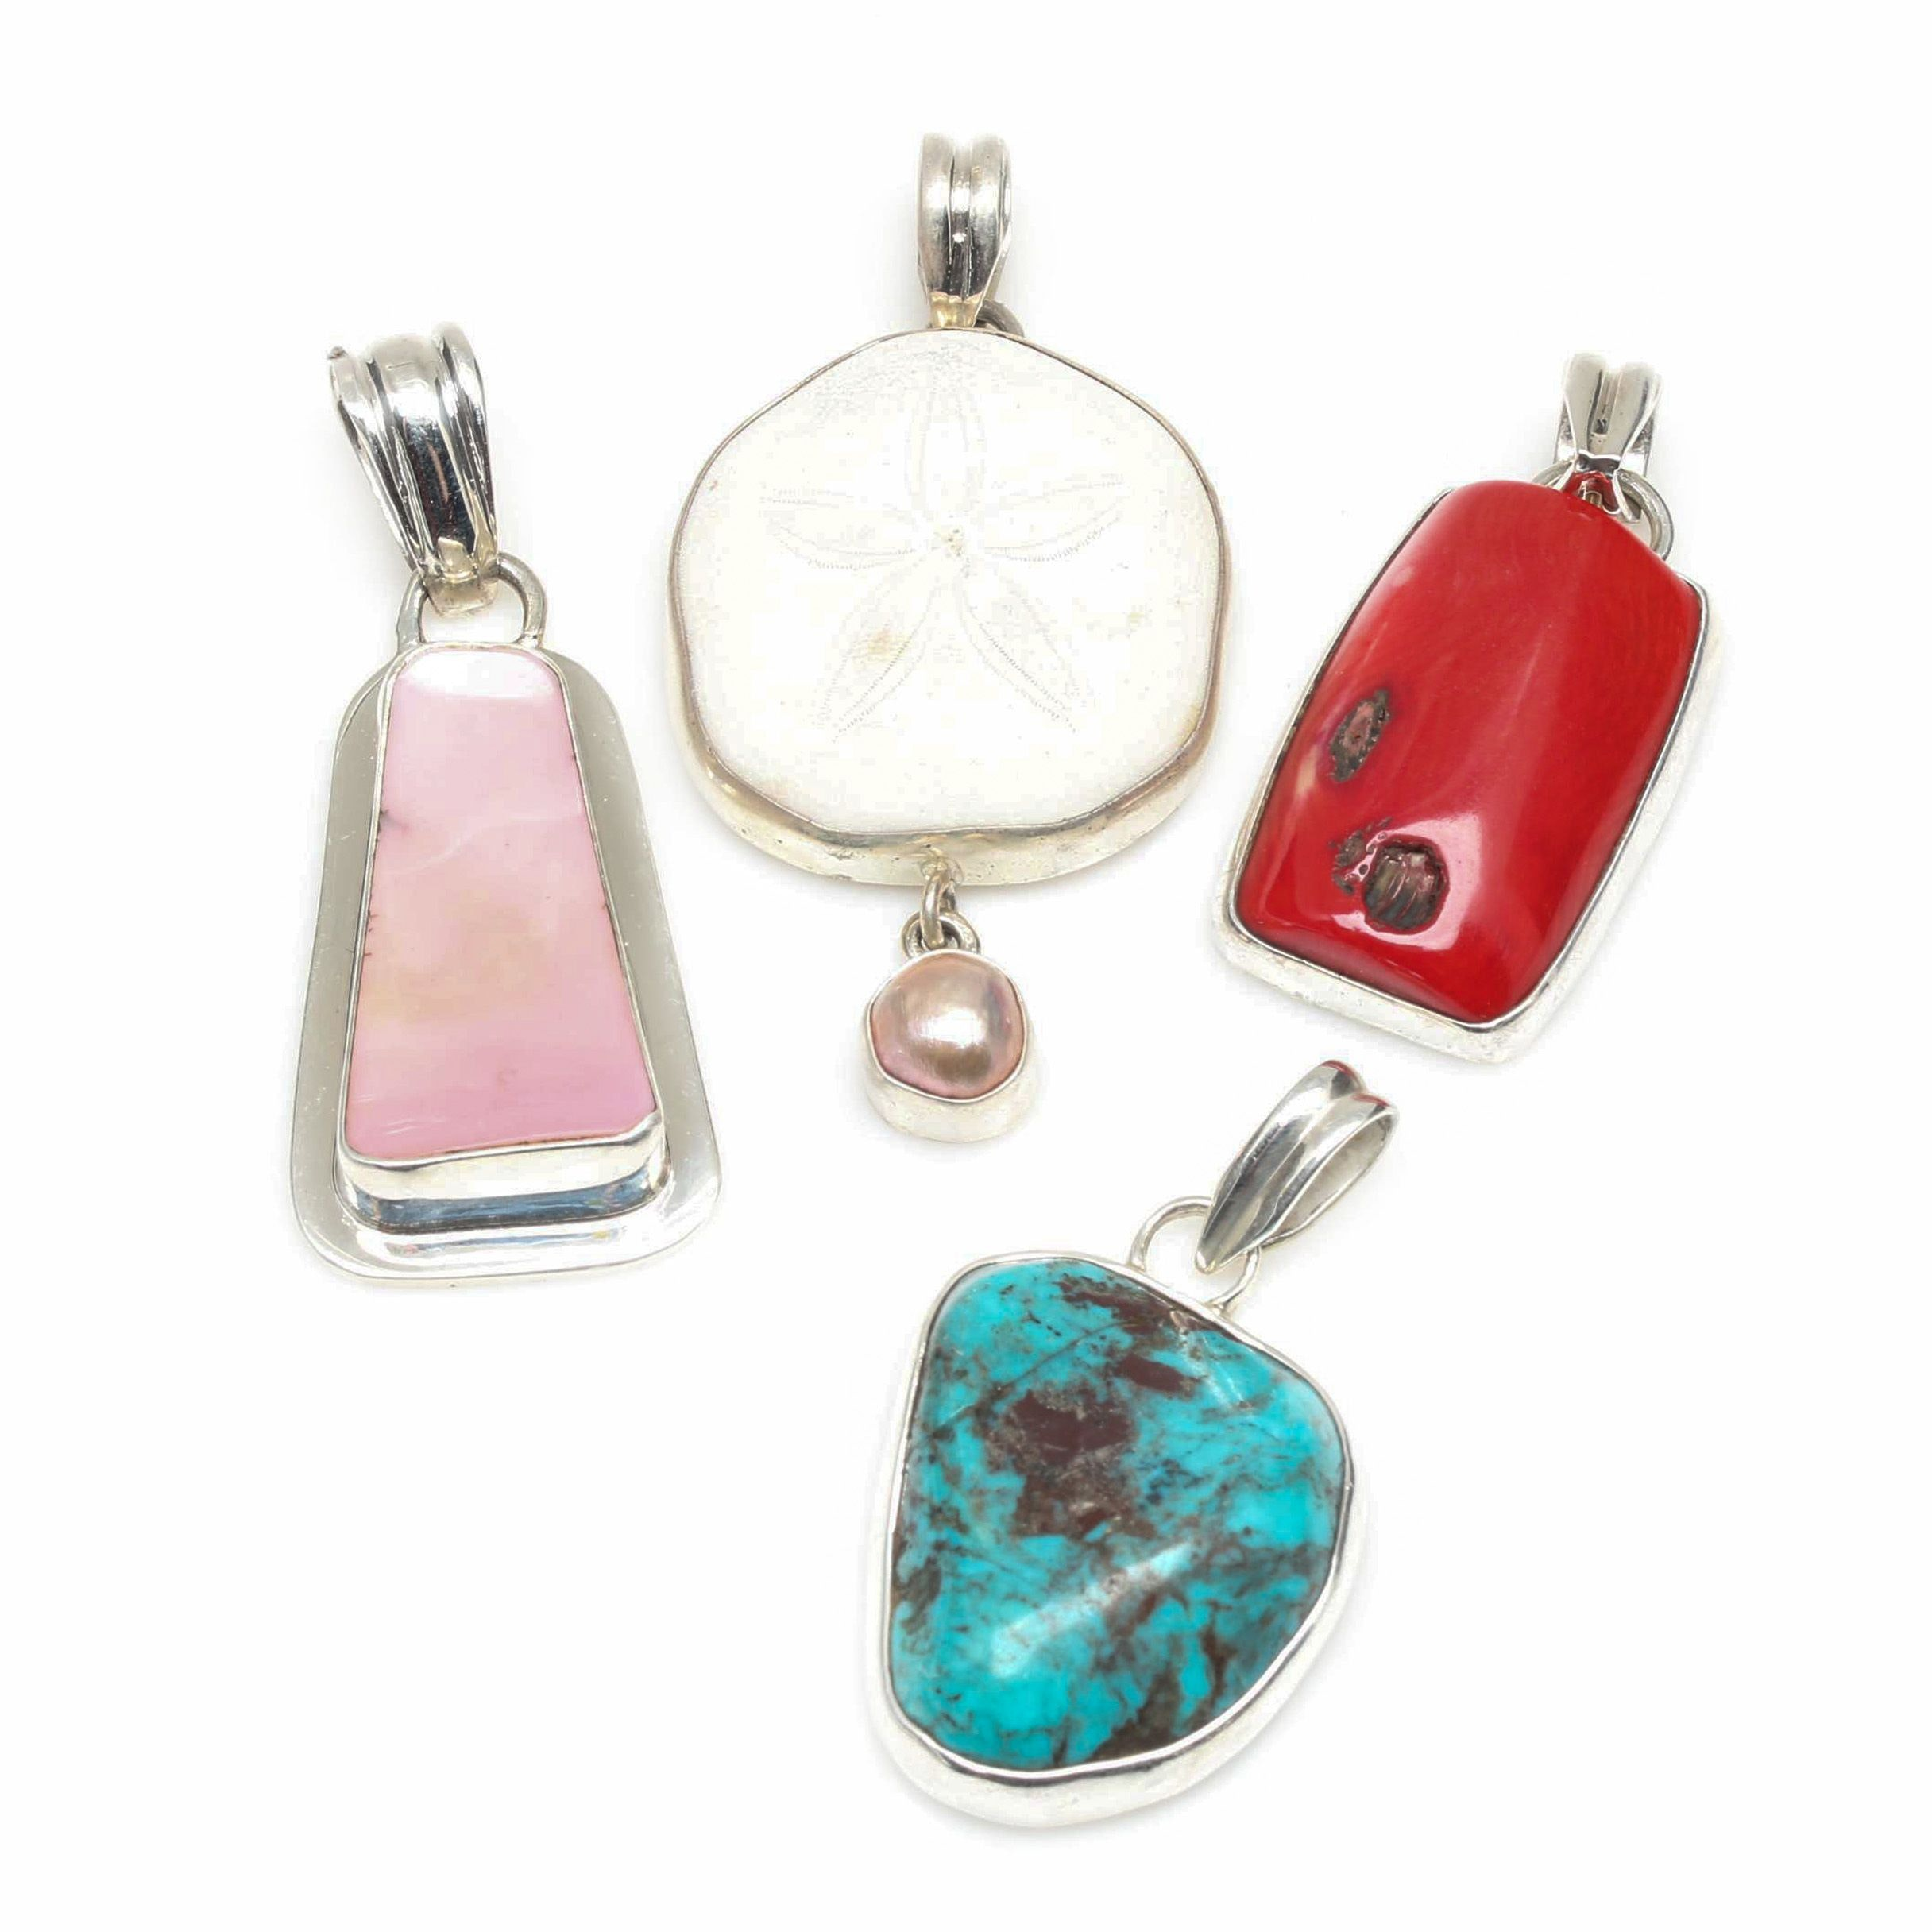 Sterling Silver Sand Dollar, Dyed Coral, and Turquoise Pendant Selection